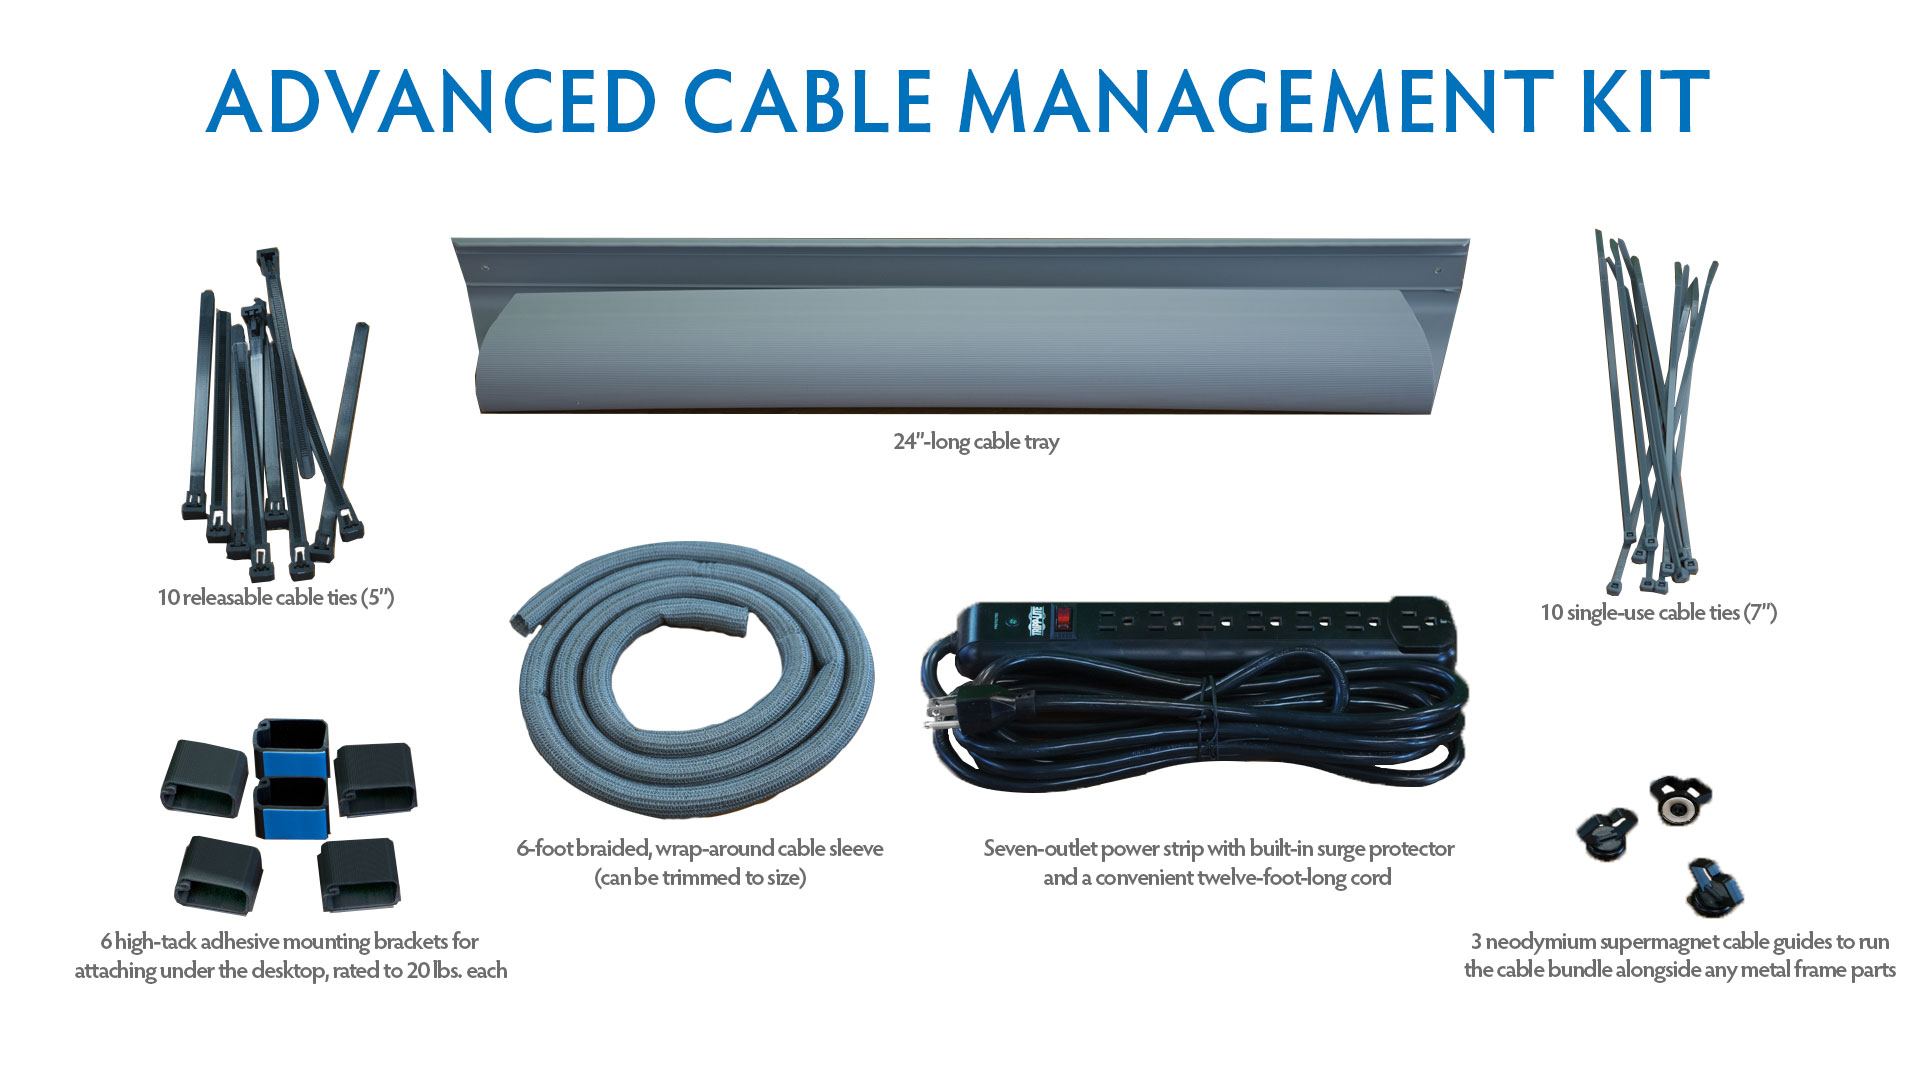 Imovr Cable Management Kit Review